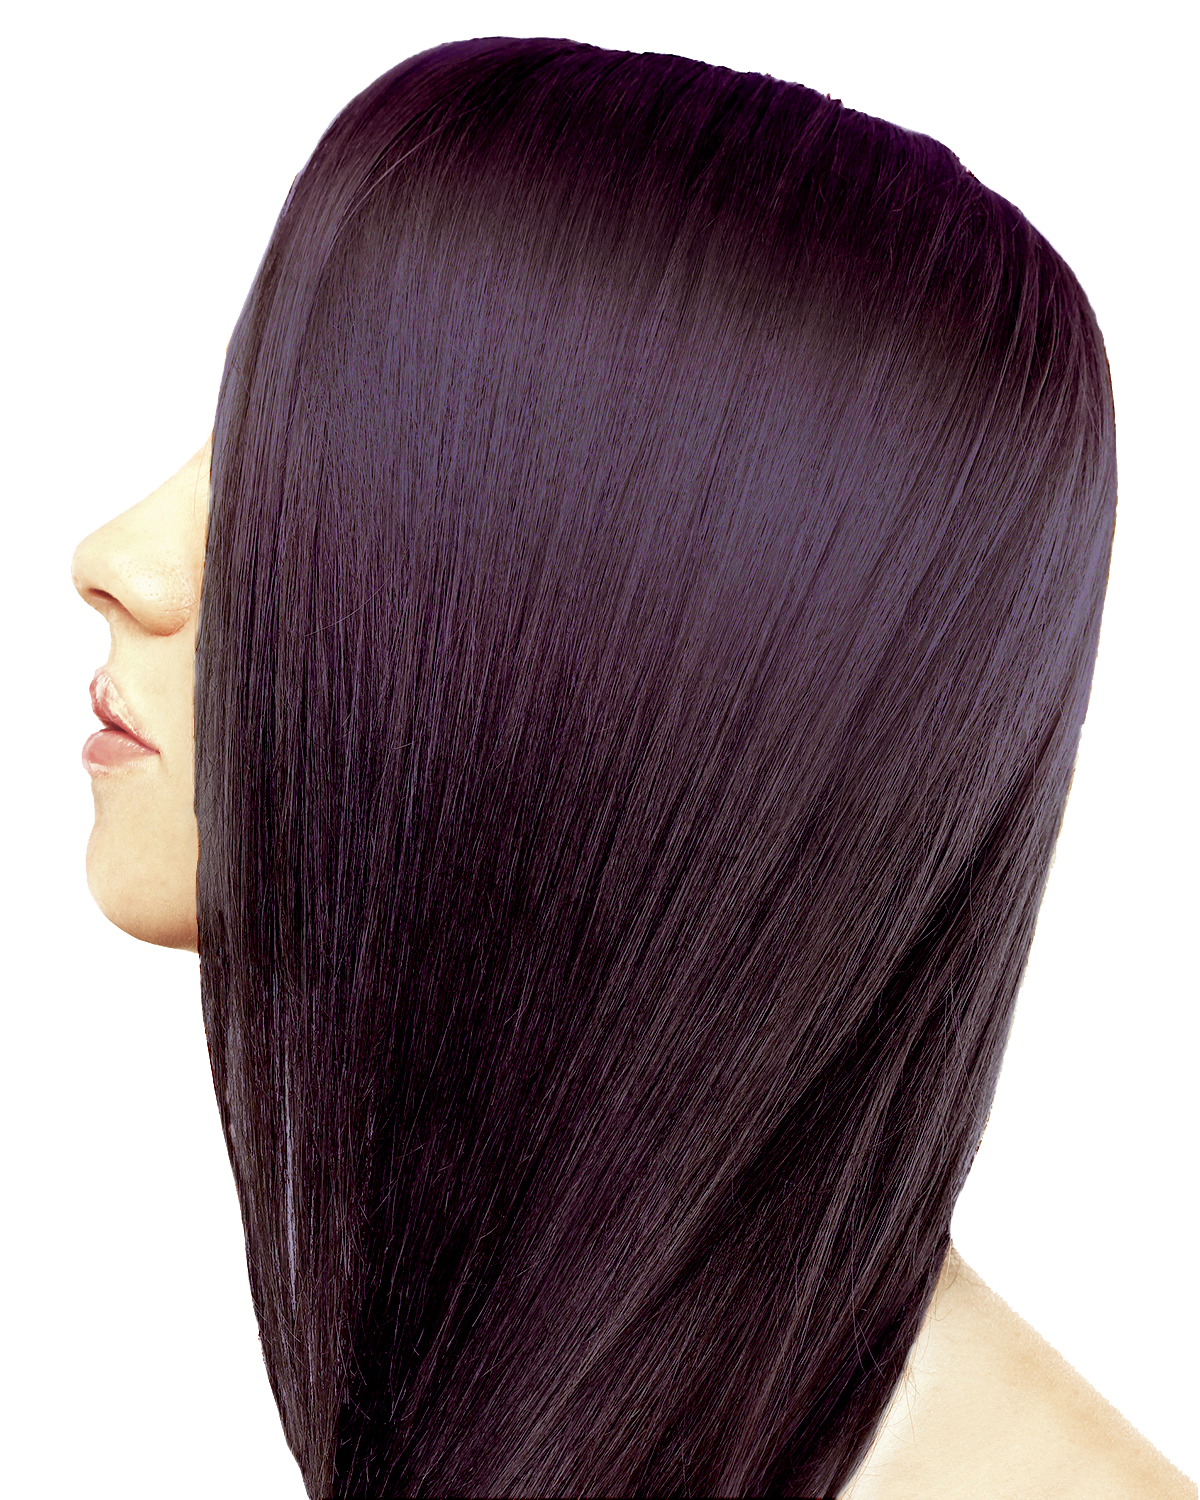 Permanent Archives Ion At Home Hair Color Plum Blending Gray Hair Ion Hair Colors